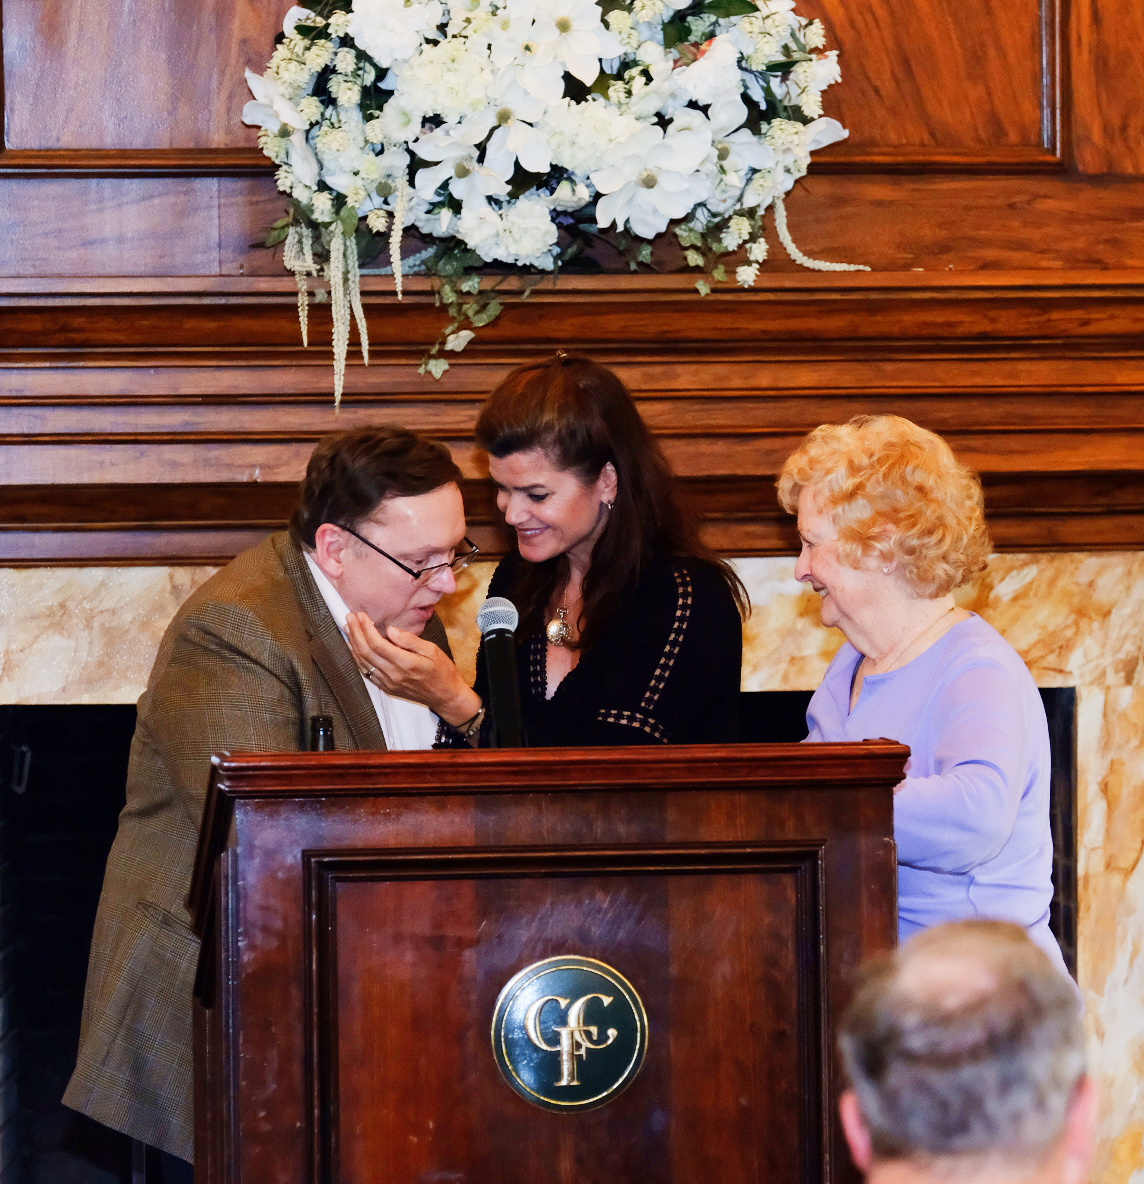 The late Mahlon Frankhauser is Brain Injury Services' Recipient of the 2017 Bryant Cohen Empowerment Award